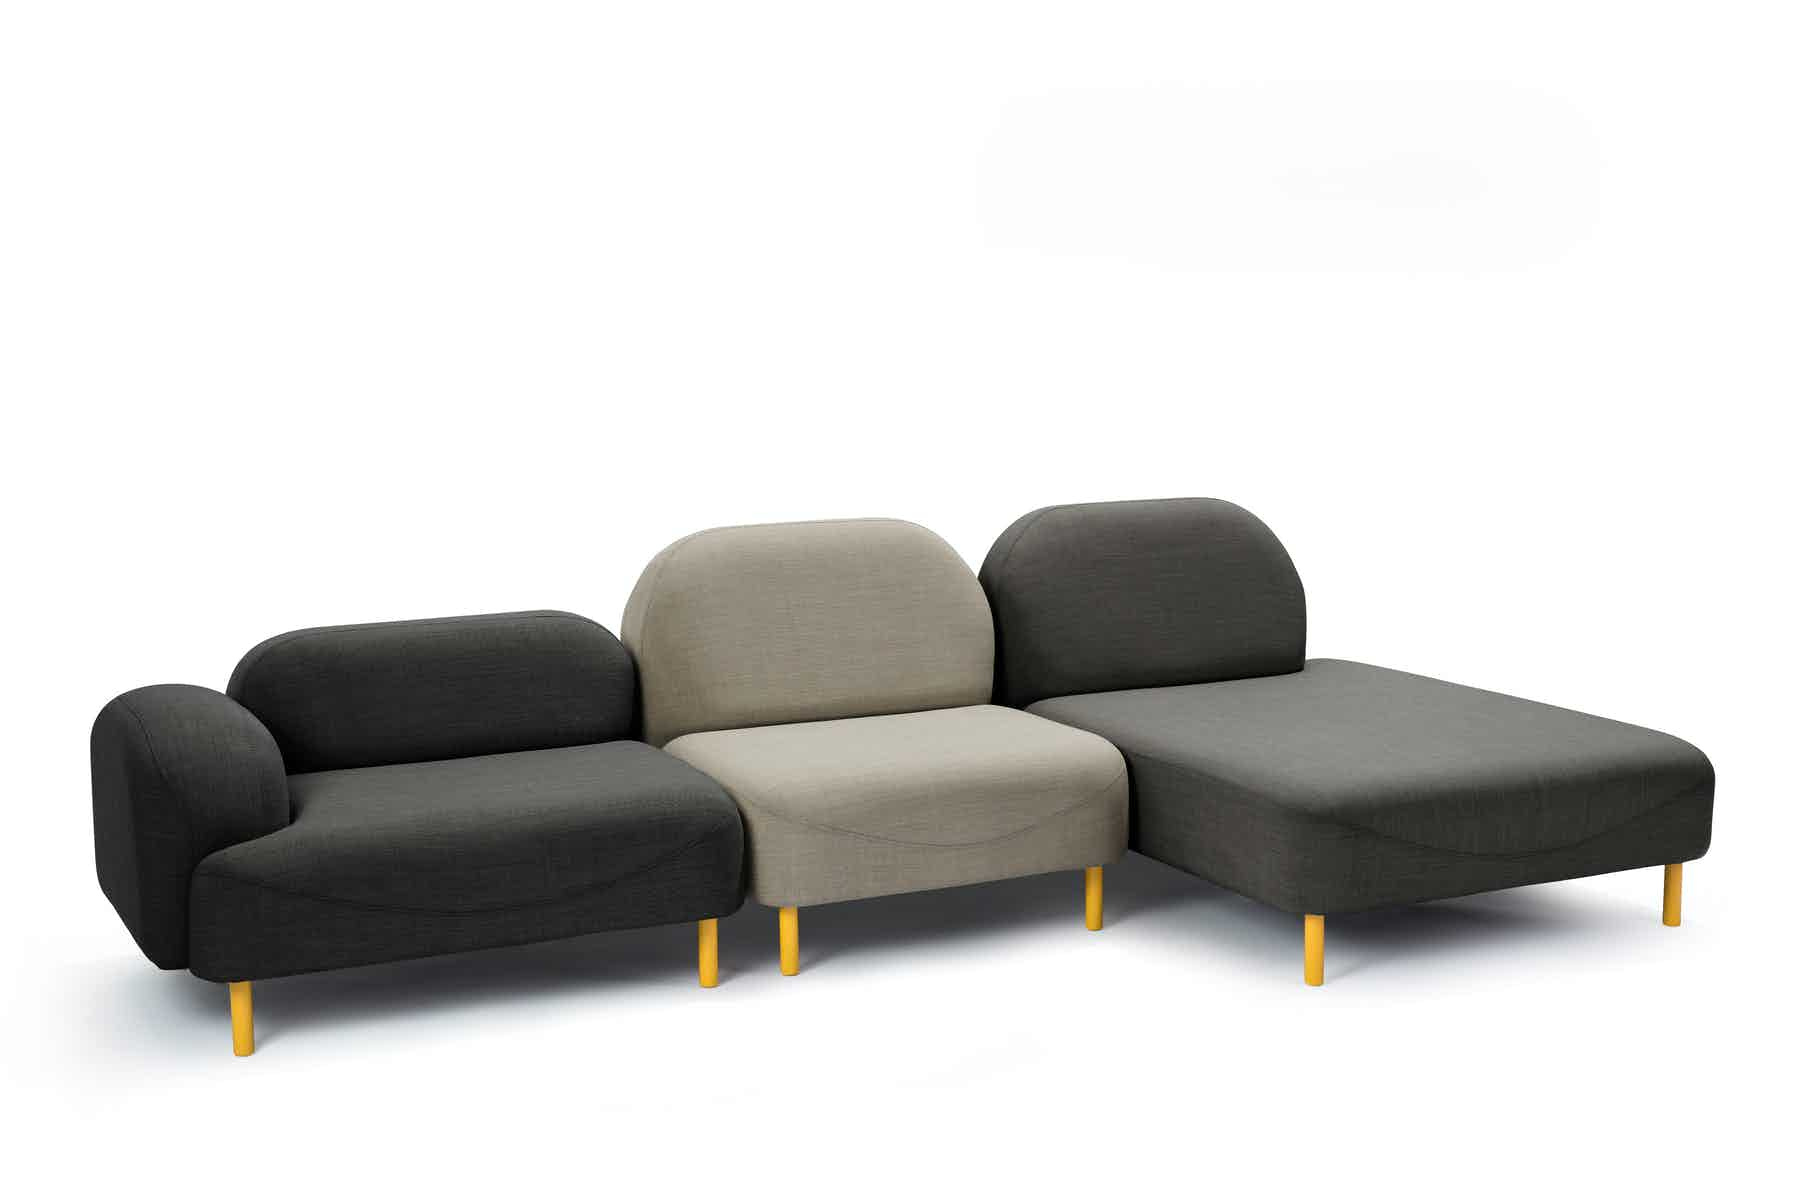 Deadgood-scafell-modular-sofa-neutrals-haute-living